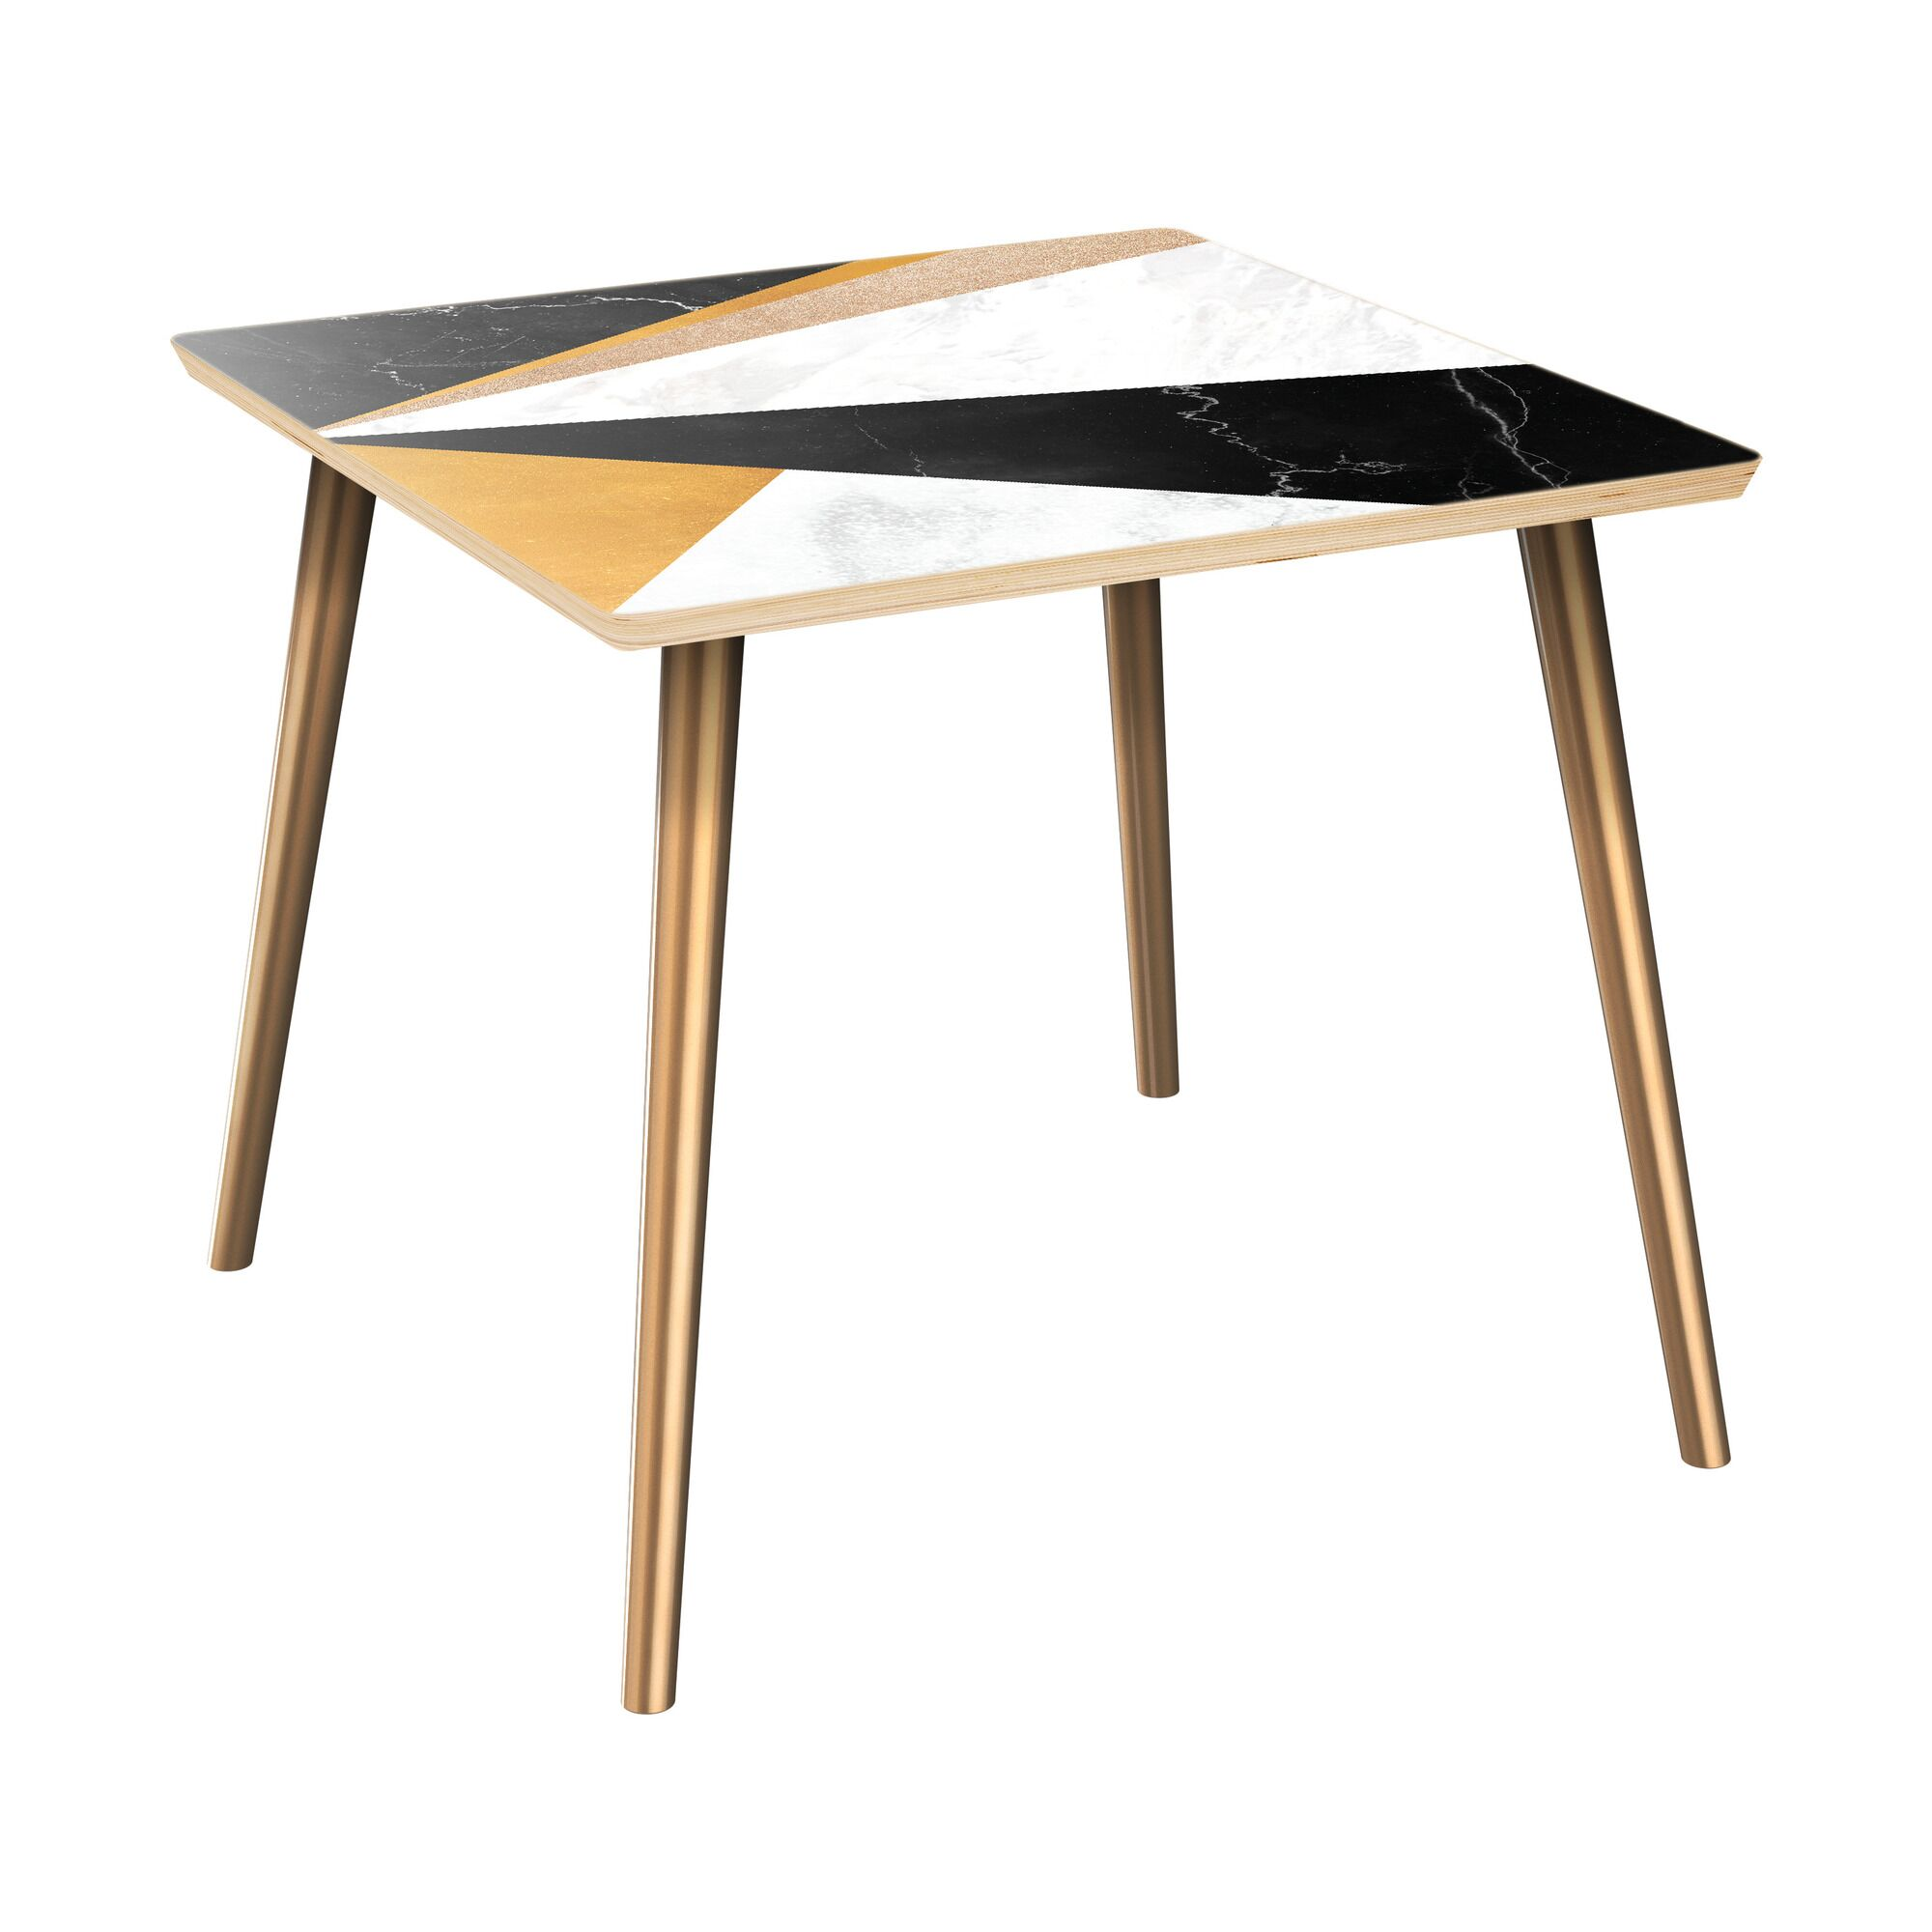 Gupton End Table Table Top Color: Natural/Black, Table Base Color: Brass